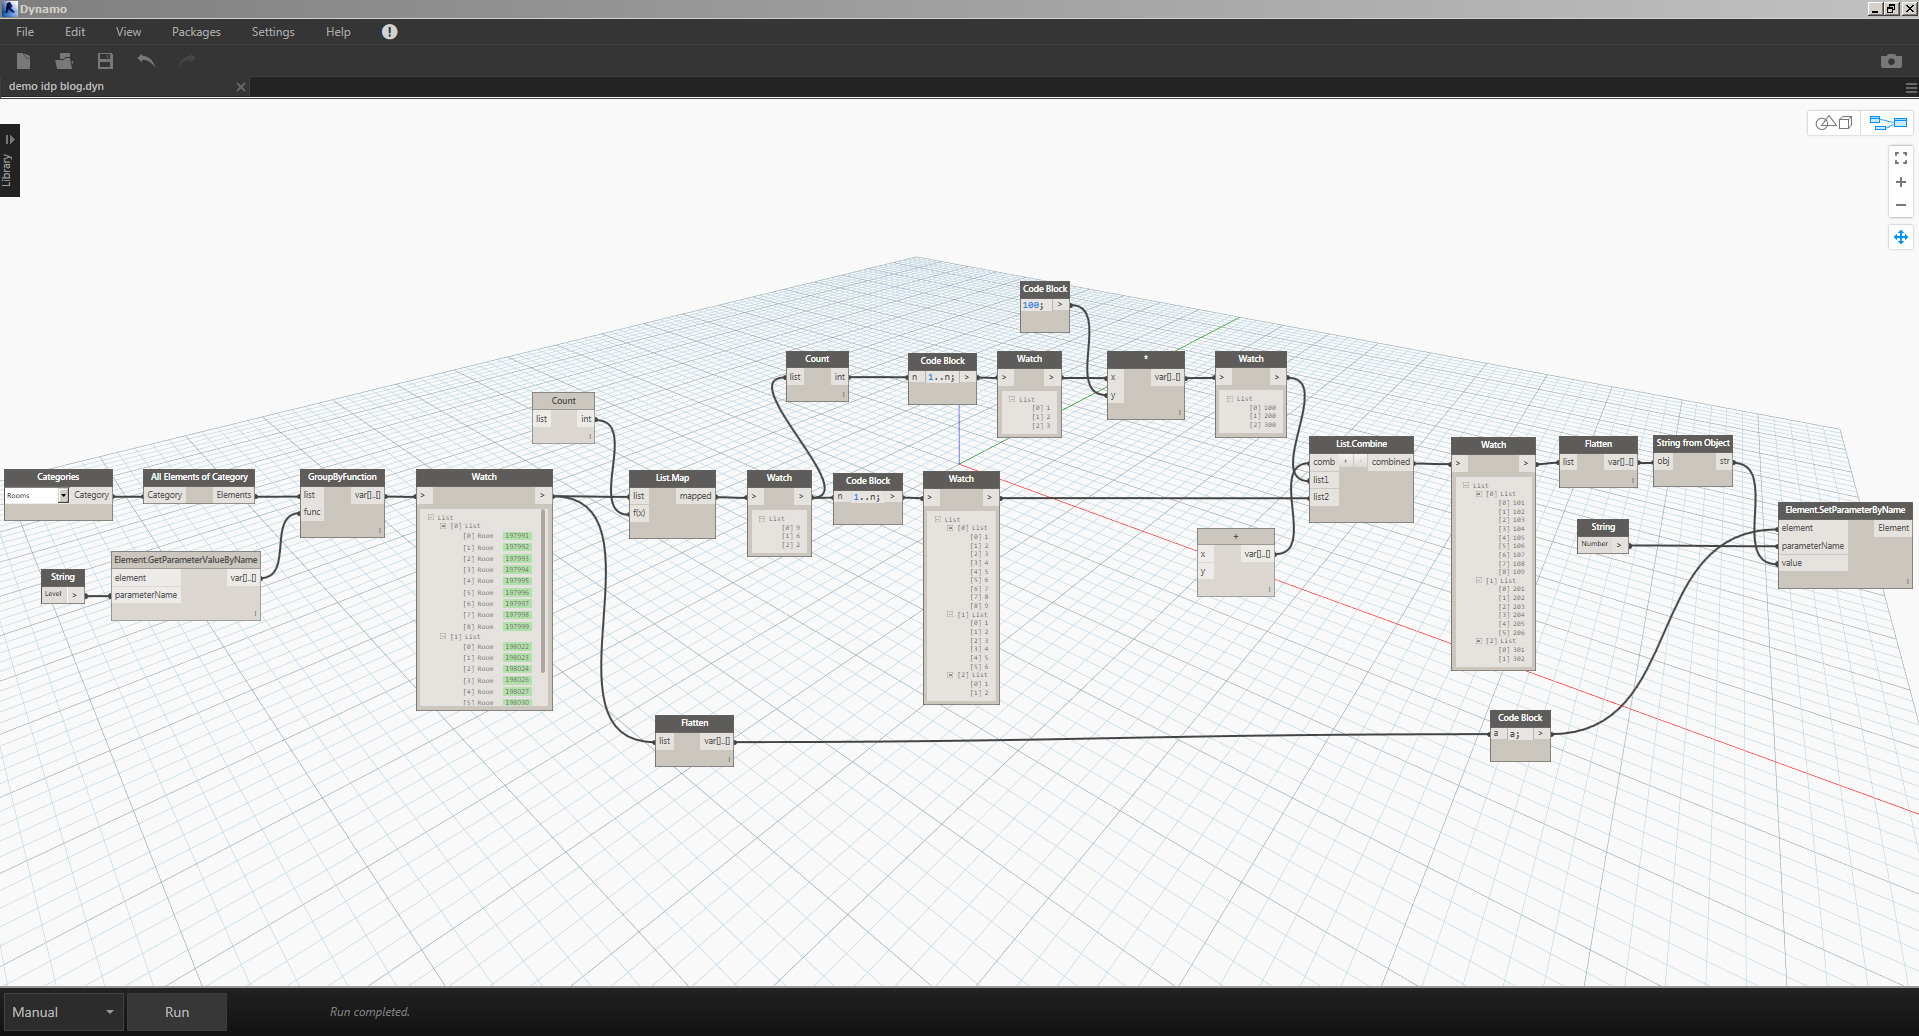 AUTOMATION OF PROCESSES THROUGH DYNAMO: PROGRAMMING FOR NON-PROGRAMMERS